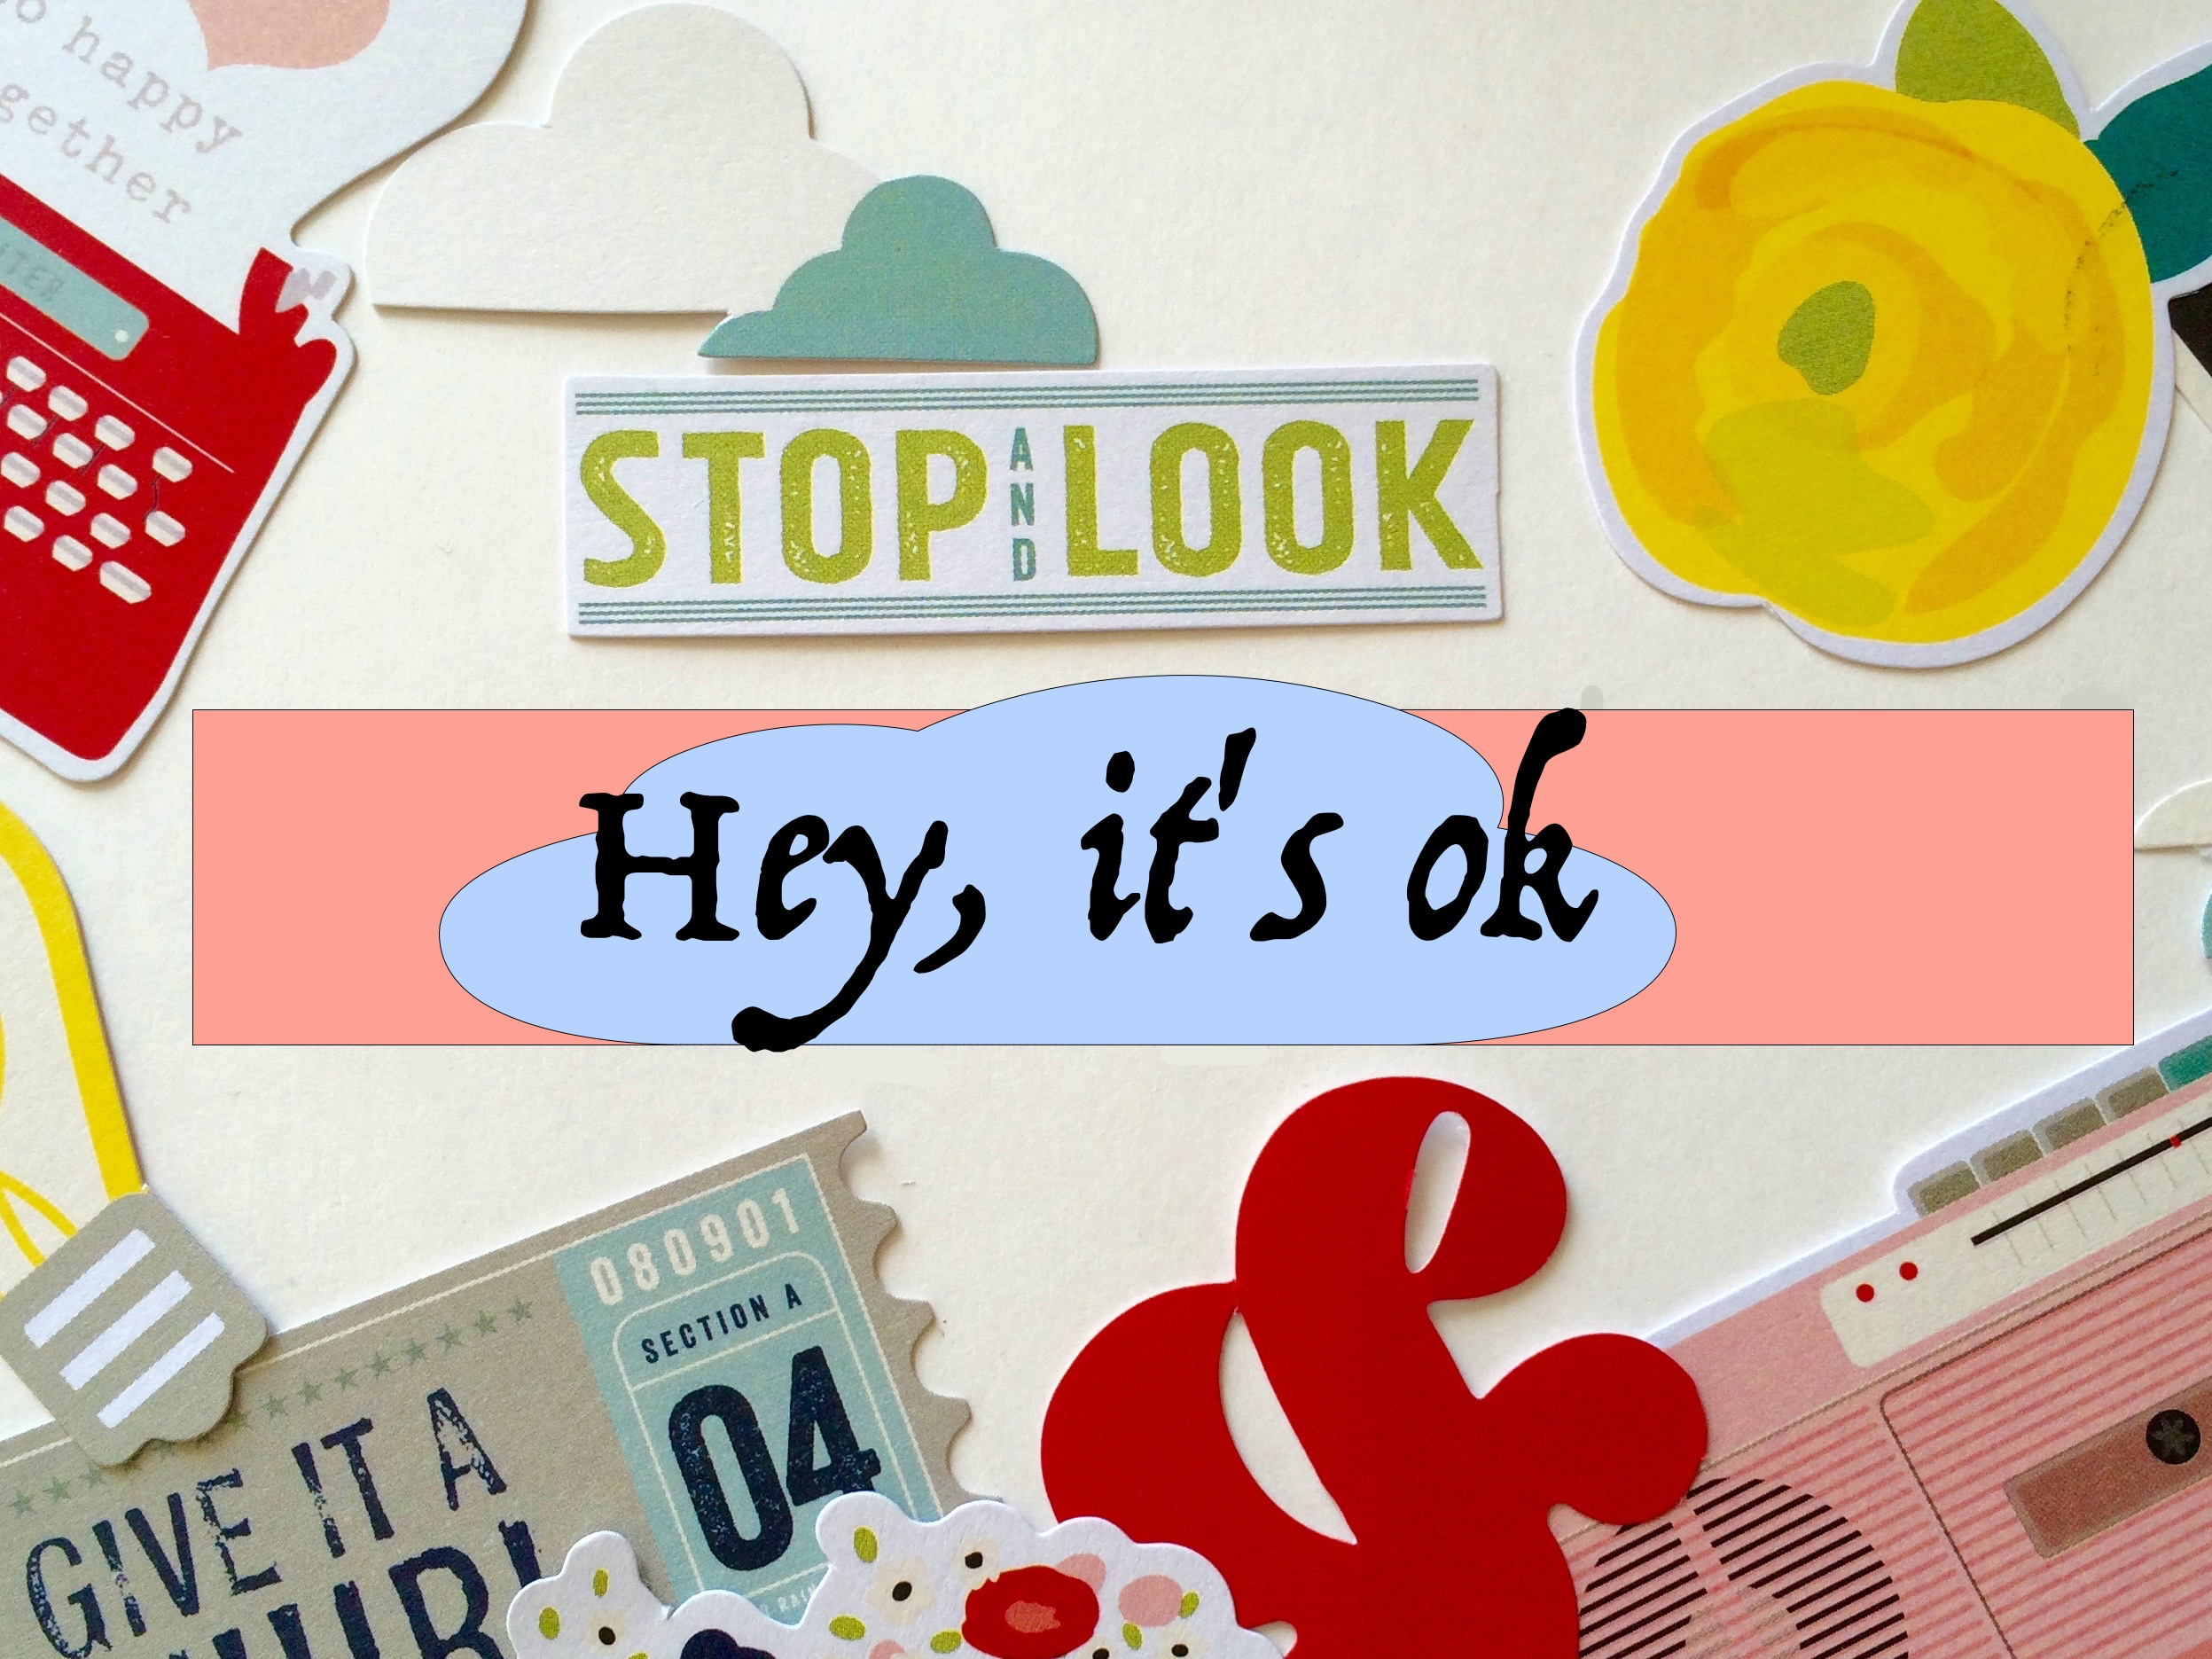 Hey, it's ok! – 10 Things That Are Fine And Dandy